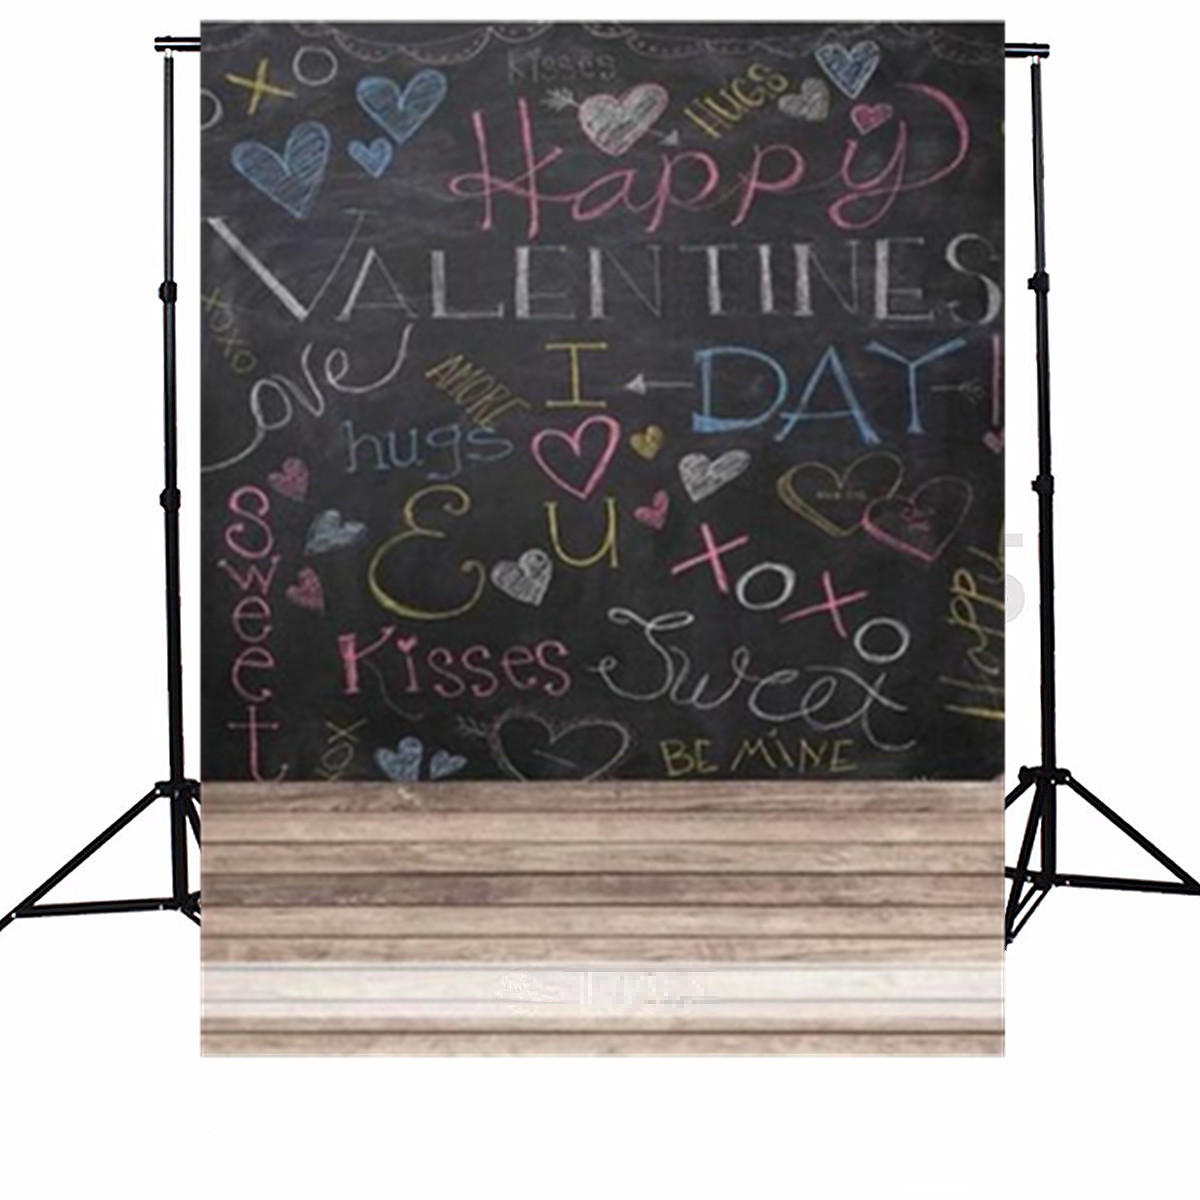 5x7FT Vinyl Happy Valentine's Day Love Kiss Chalk Word Photo Studio Background Backdrop